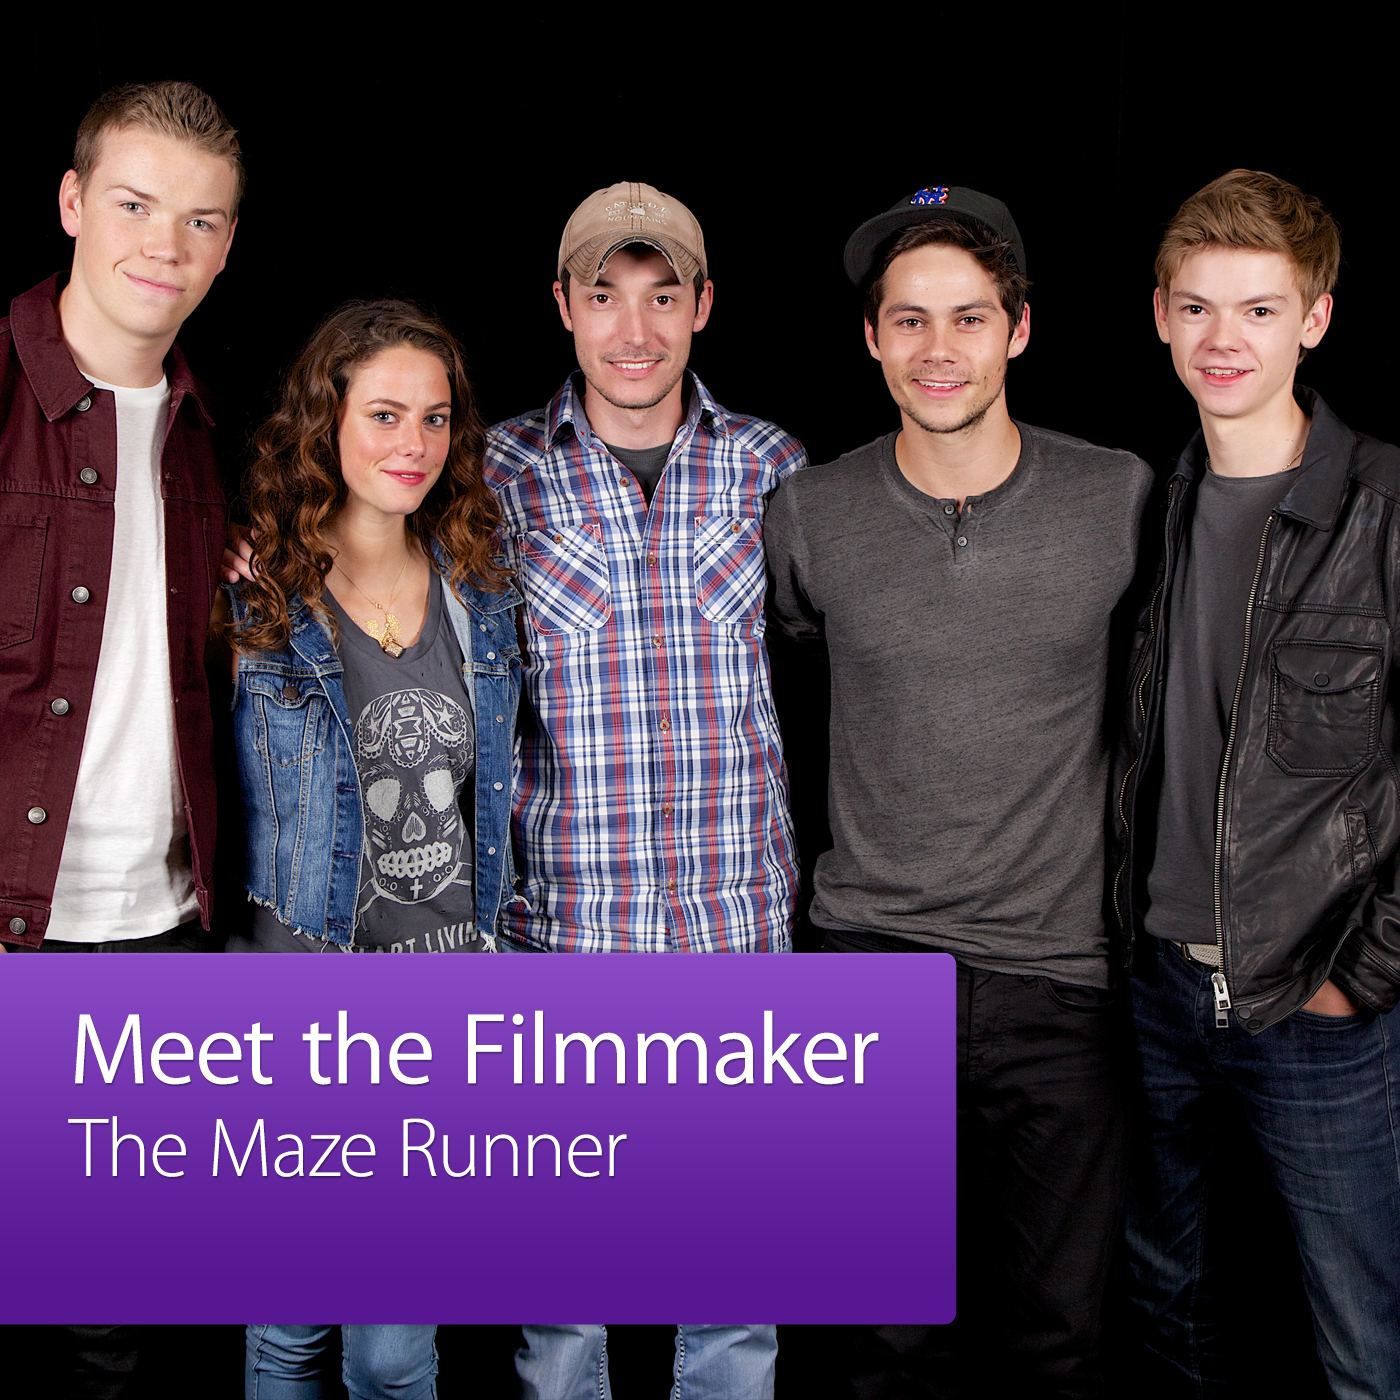 The Maze Runner: Meet the Filmmaker